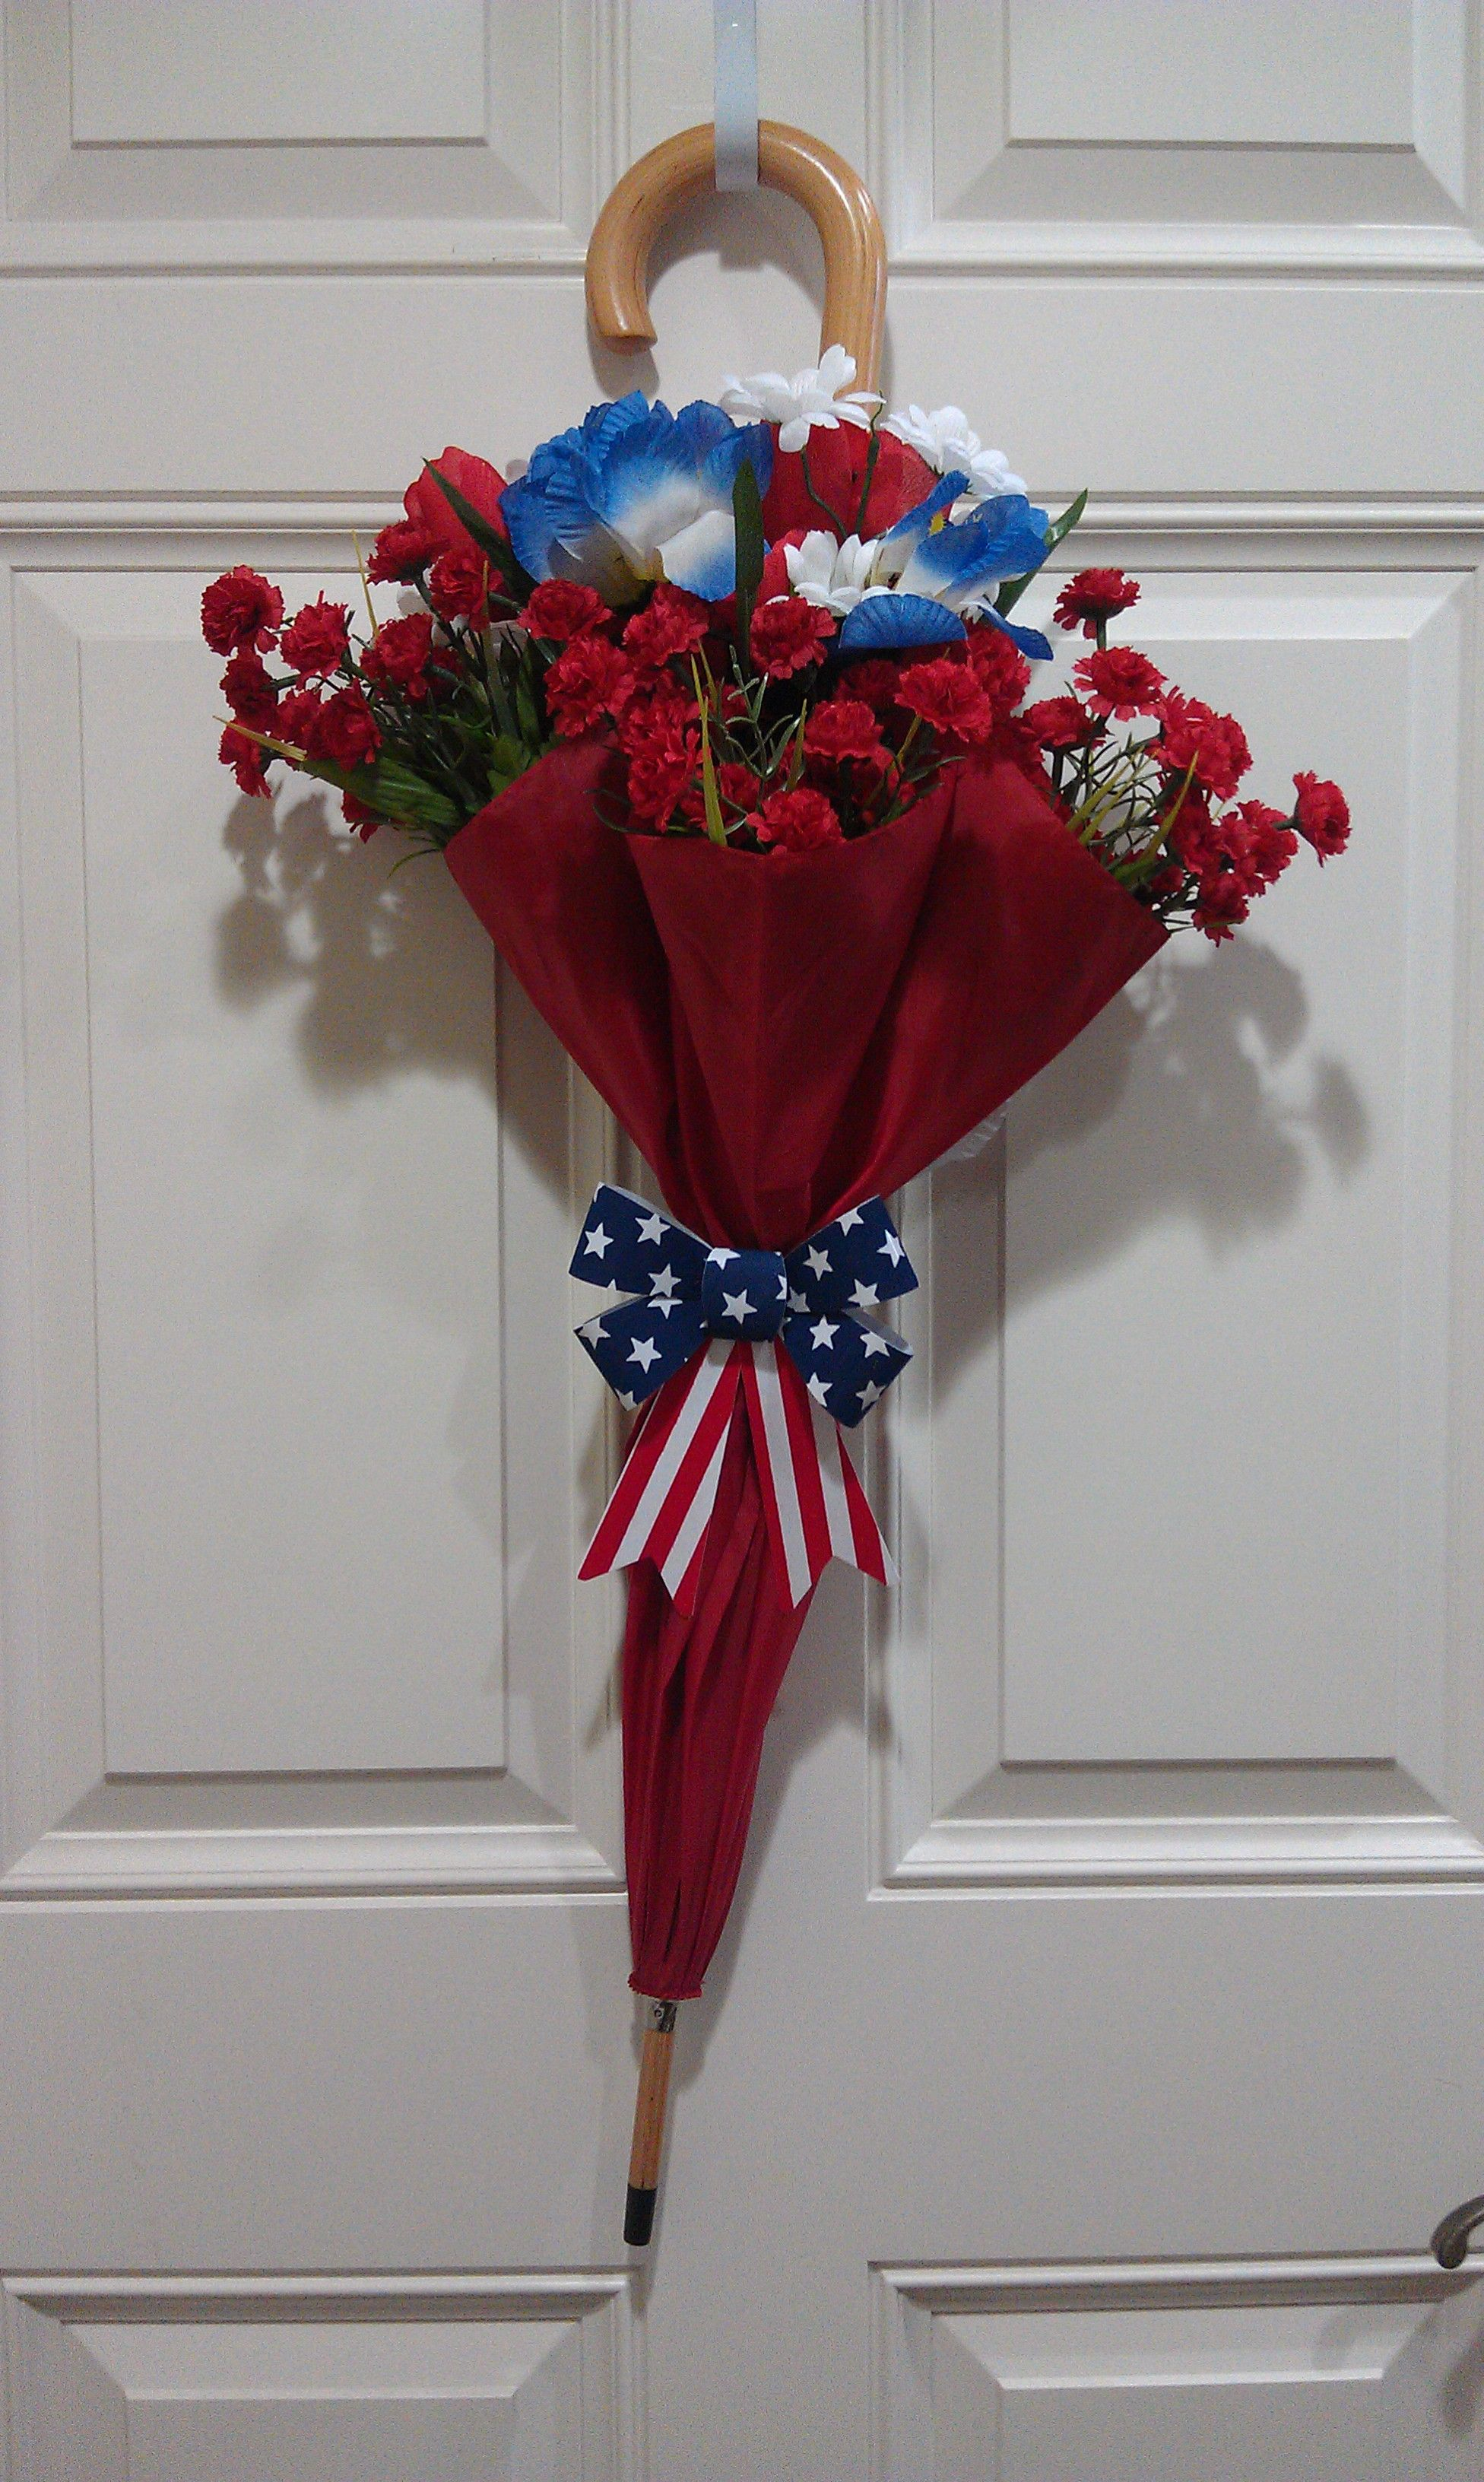 Arrange Some Silk Flowers In An Umbrella Hold The Stems Together